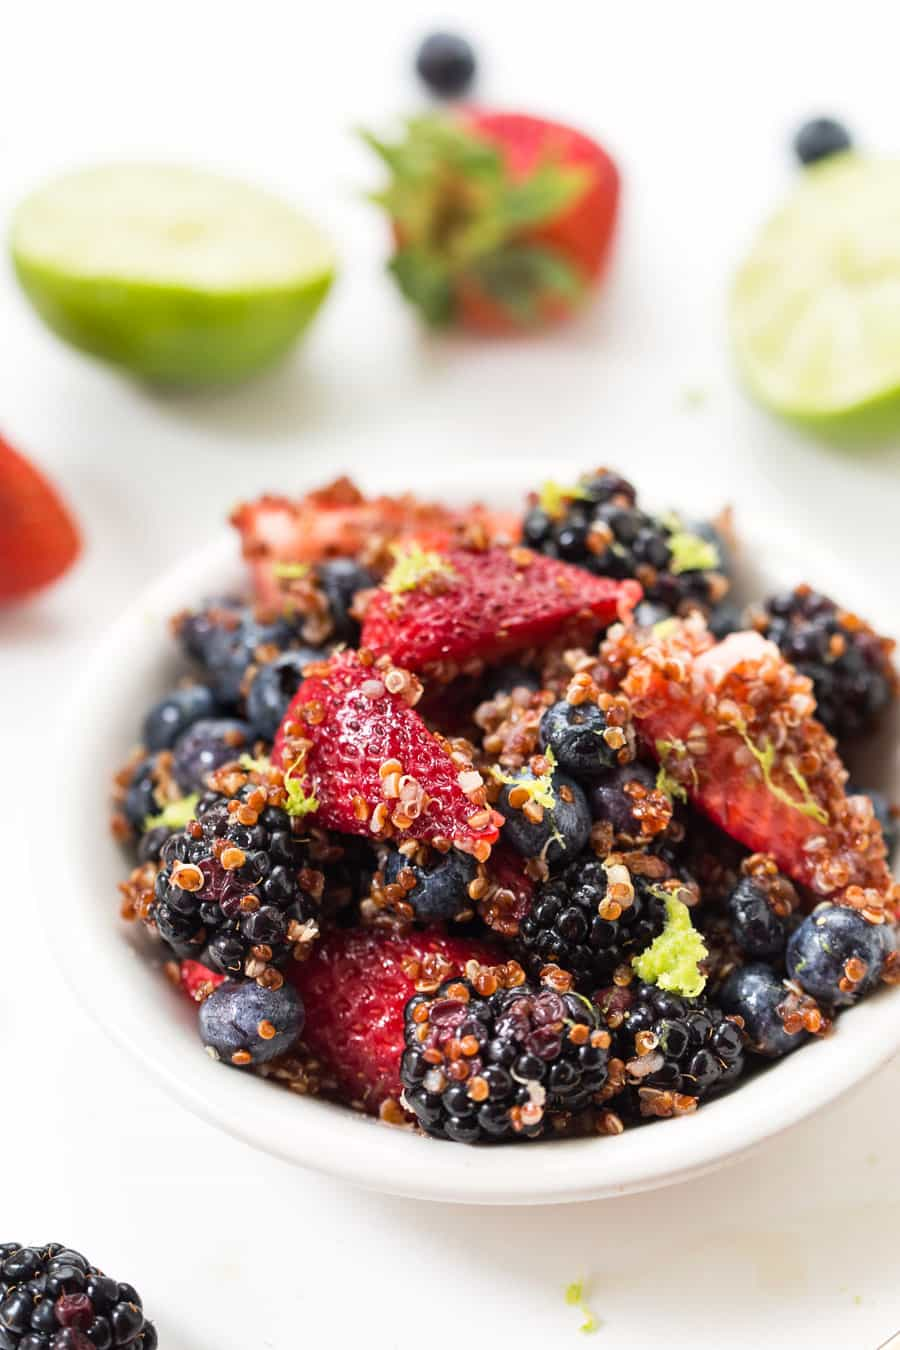 This TRIPLE BERRY QUINOA SALAD is tossed in a maple lime dressing and makes the perfect summer dessert (or breakfast!)